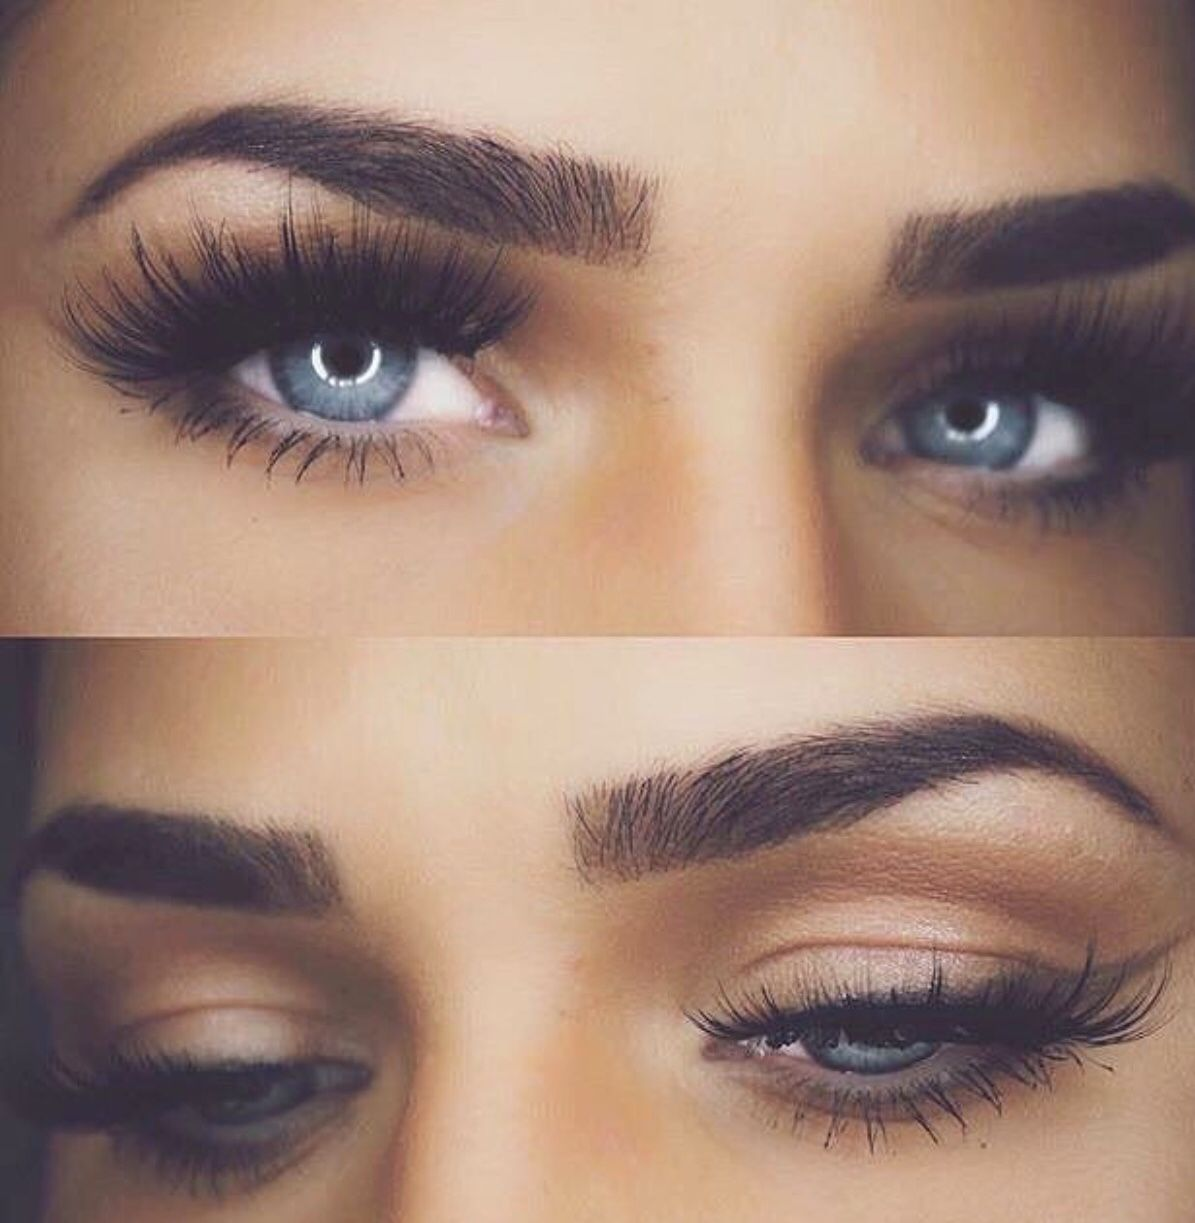 Pin by Annu on MakeUp Inspo | Best eyebrow makeup, Eyebrow ...